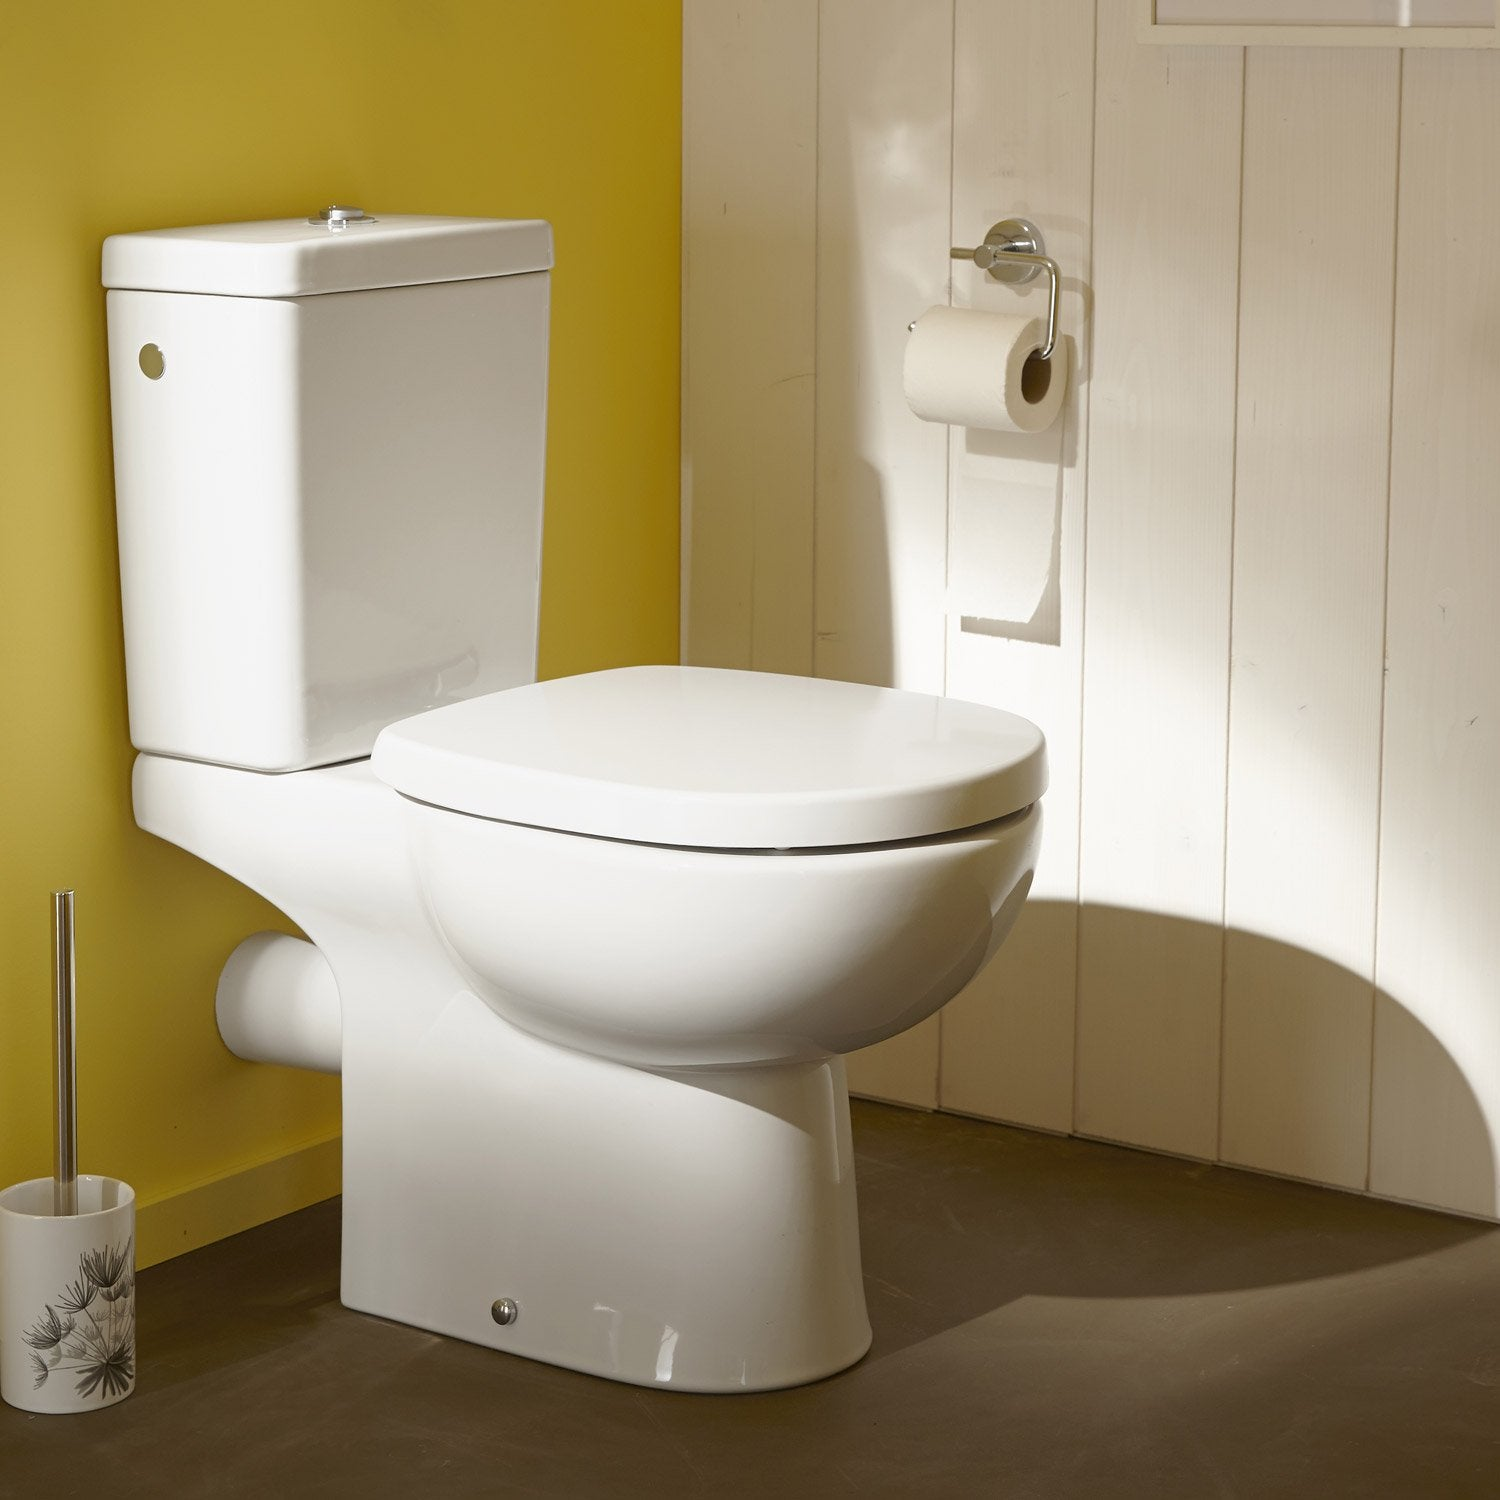 Deco wc leroy merlin for Lunette wc ideal standard